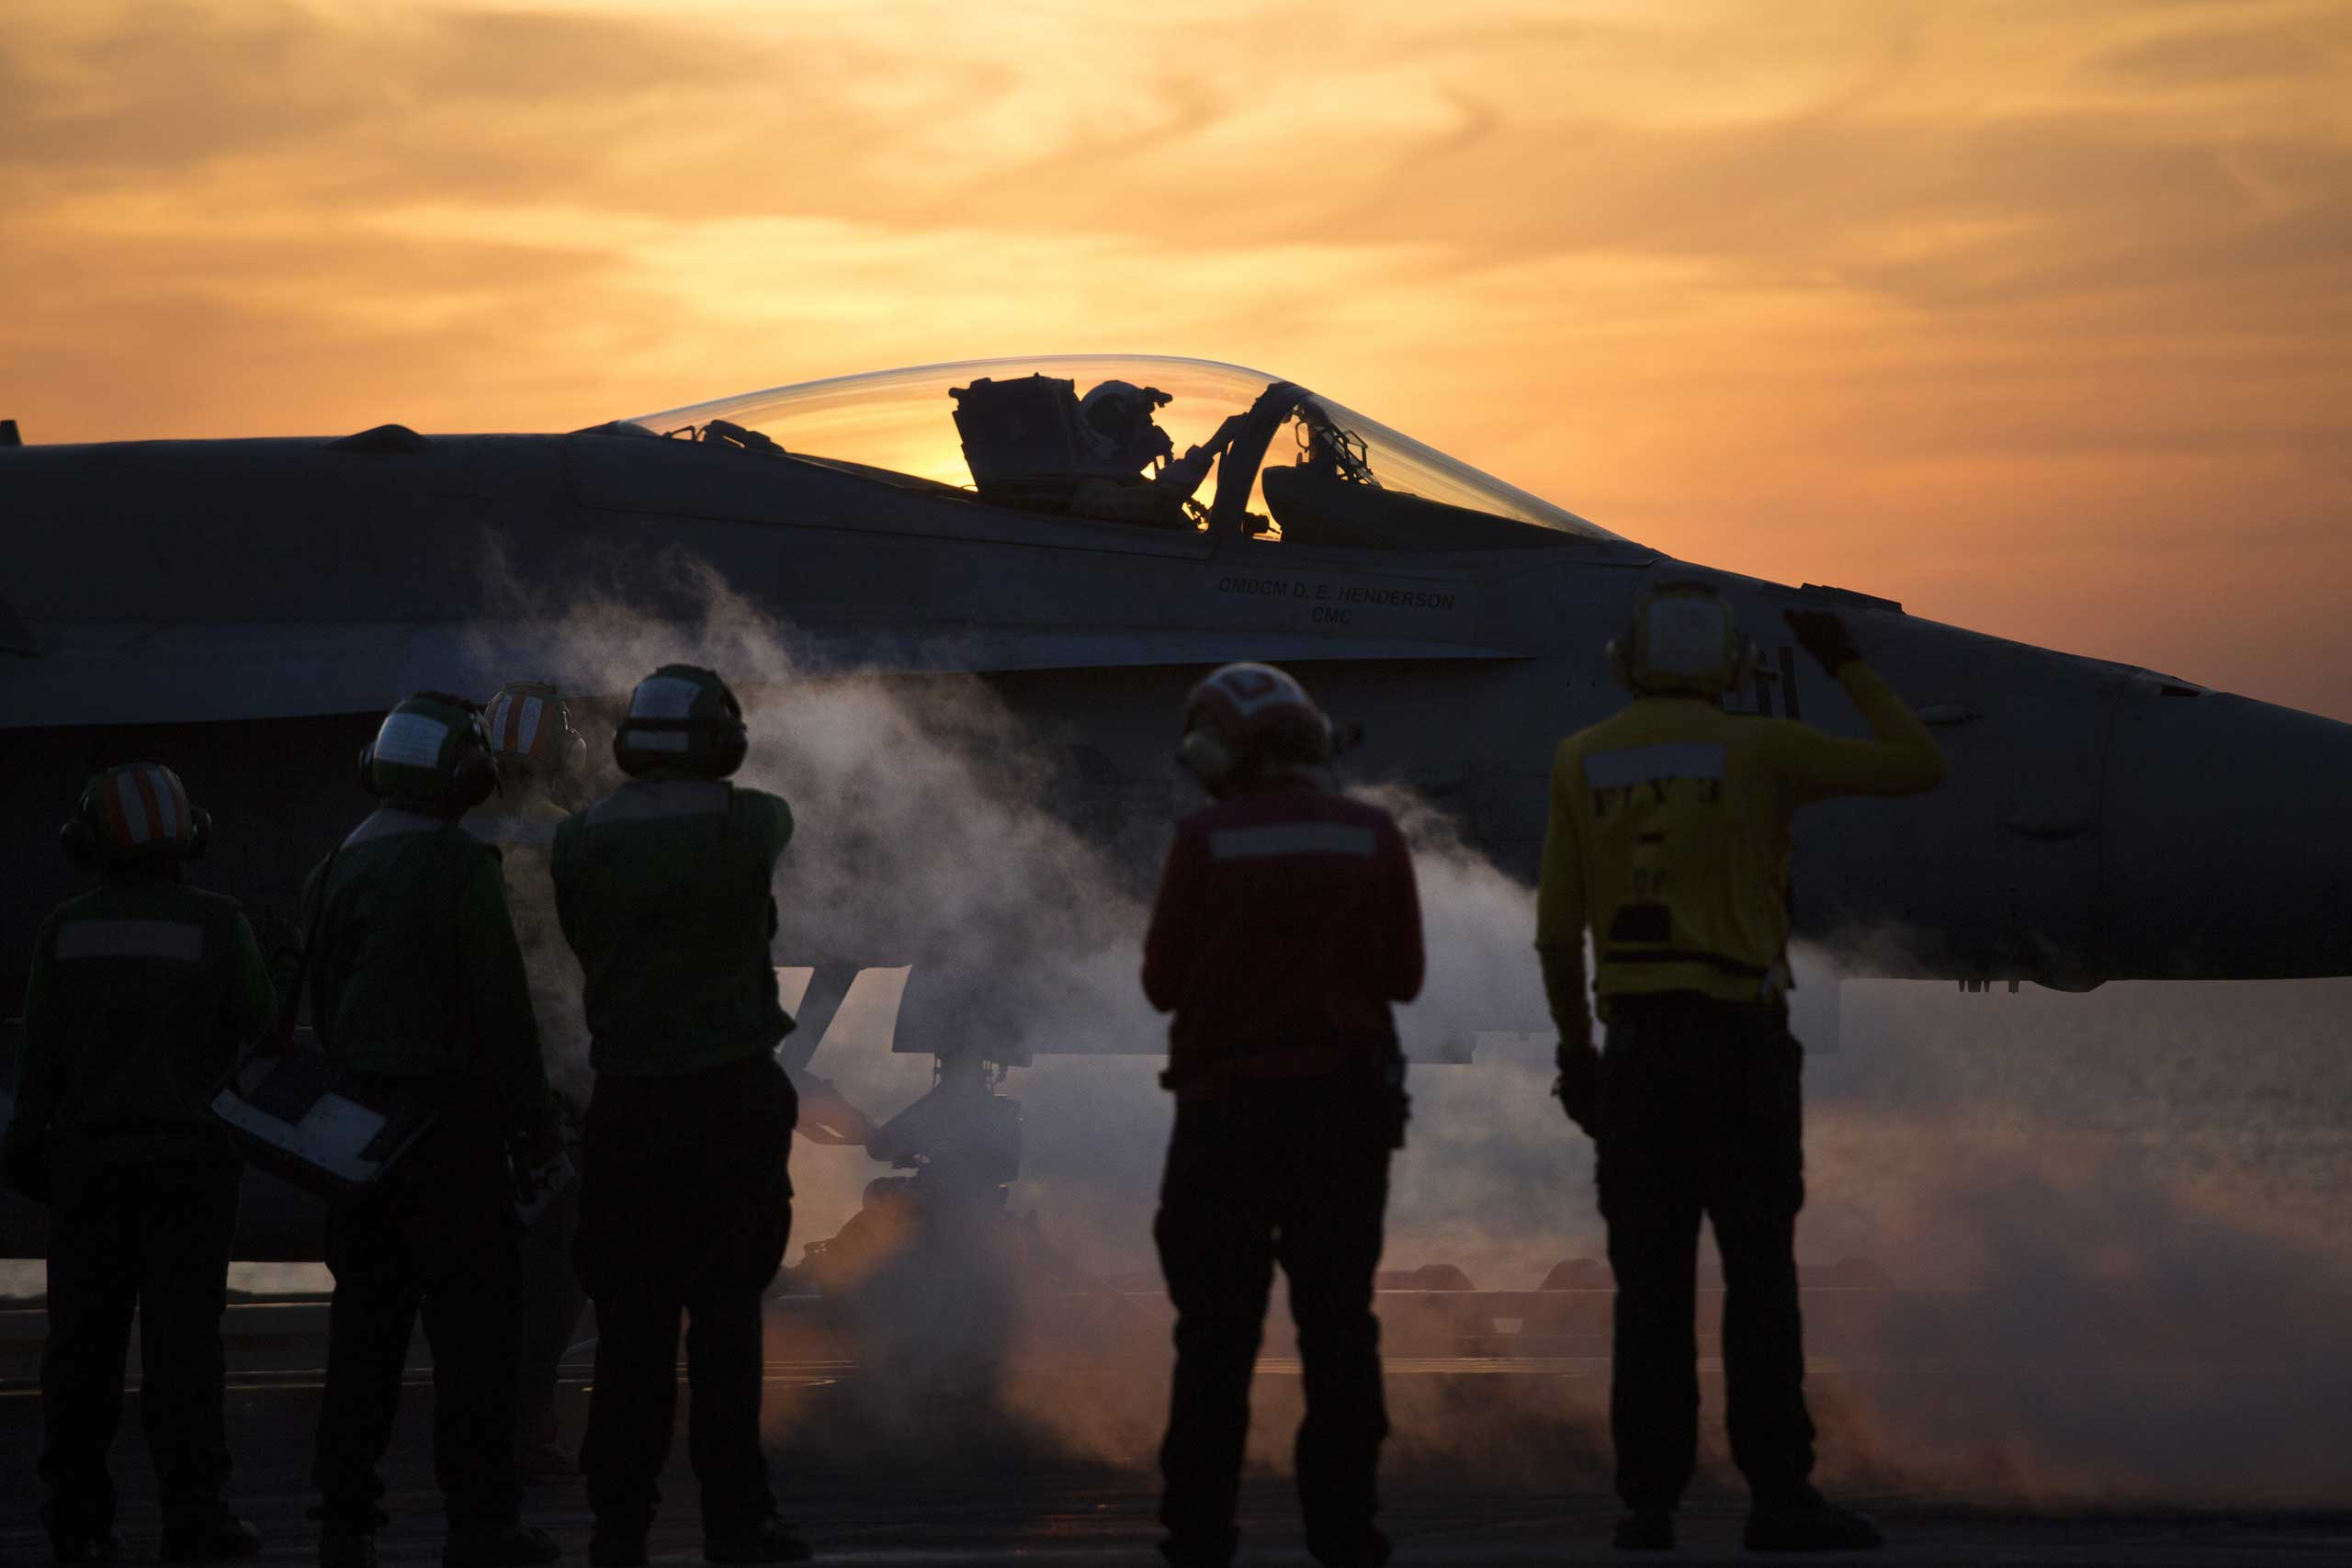 The New York Times: A Desert War on ISIS, Fought From a Floating CityCrew members around an aircraft aboard the USS Carl Vinson, a Nimitz-class aircraft carrier, in the Persian Gulf, Dec. 8, 2014.